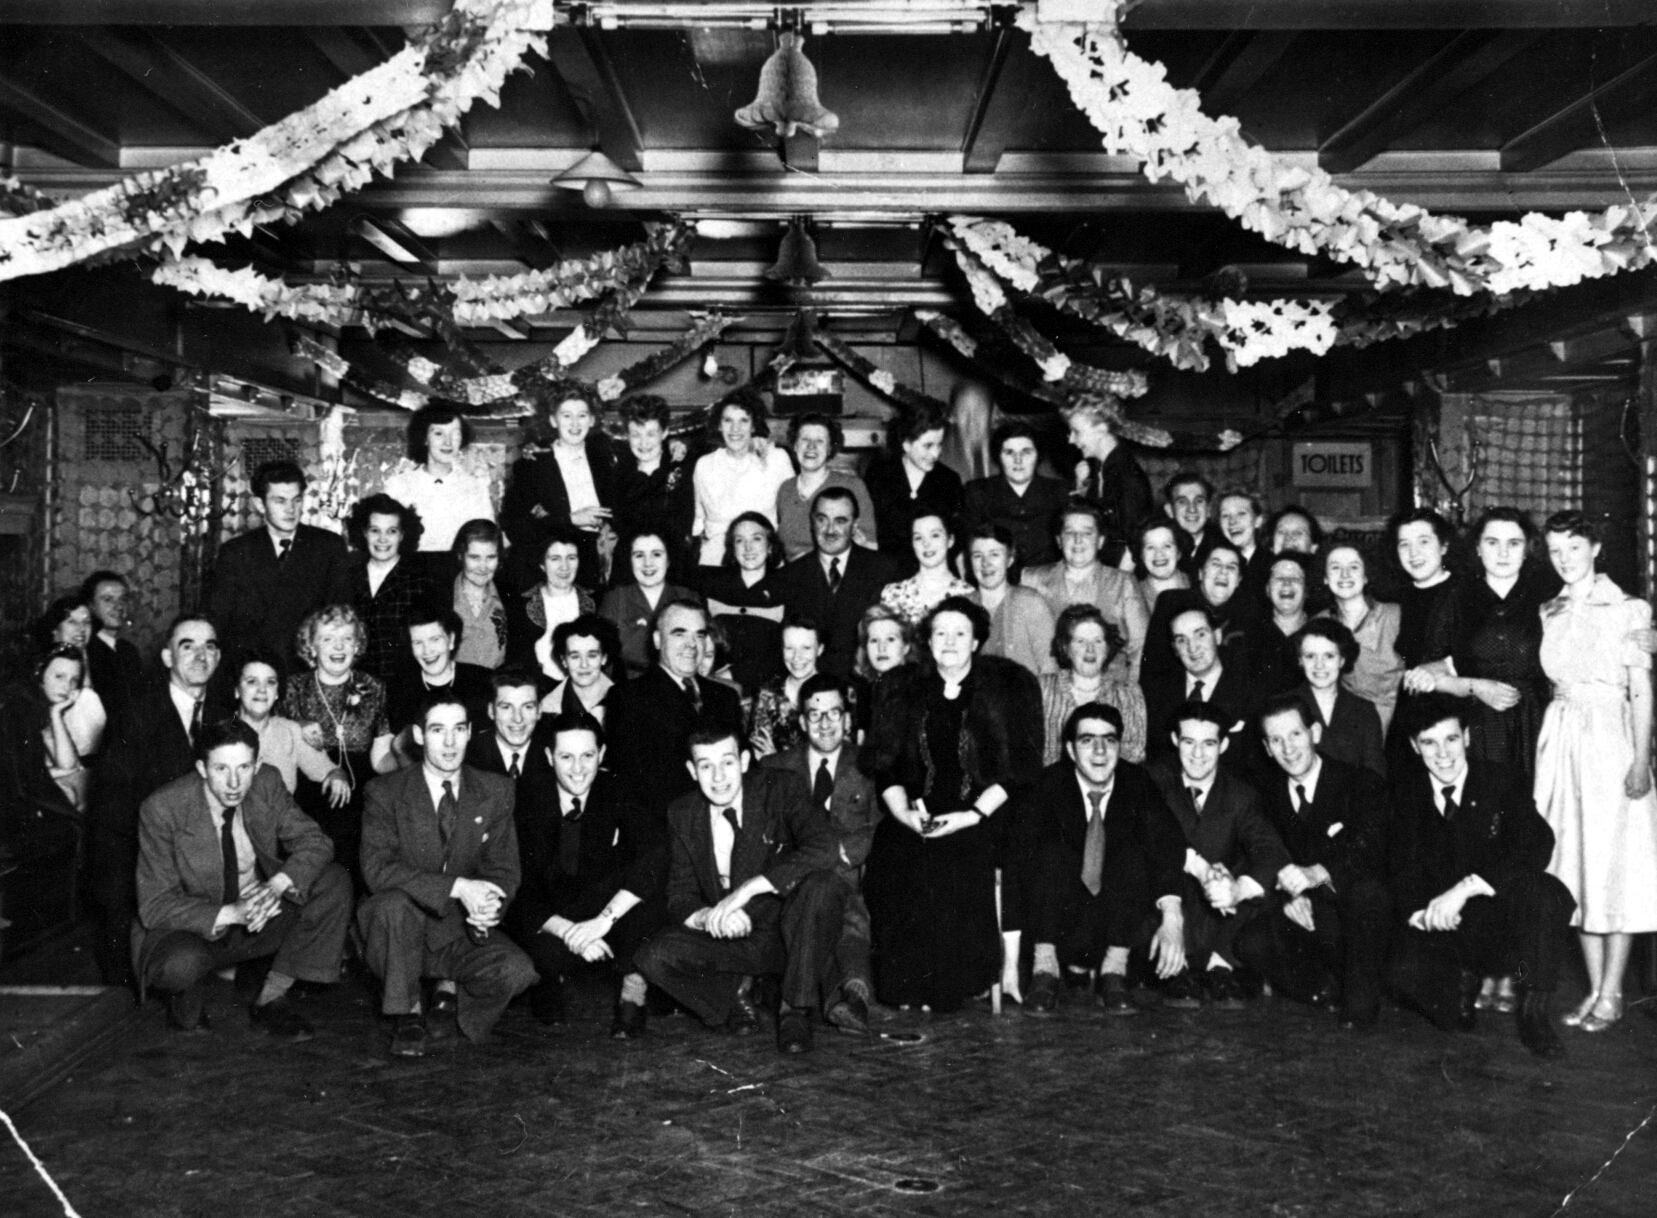 Christmas Function In The Oak Room Of The New Picture House, early 1950s